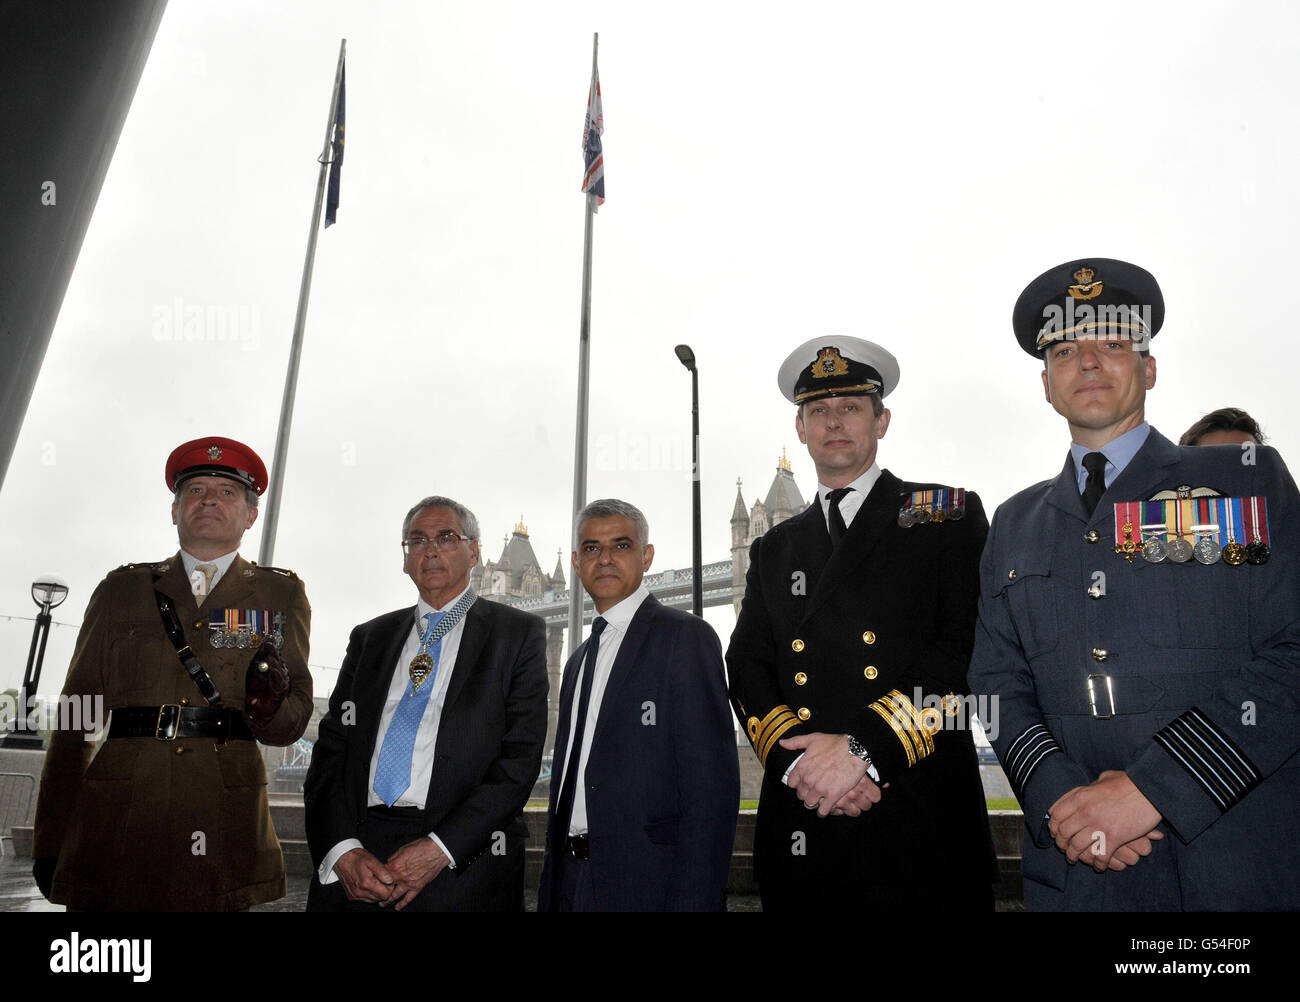 Mayor of London Sadiq Khan (centre) stands with Chairman of the London Assembly Tony Arbour (second left) and members - Stock Image